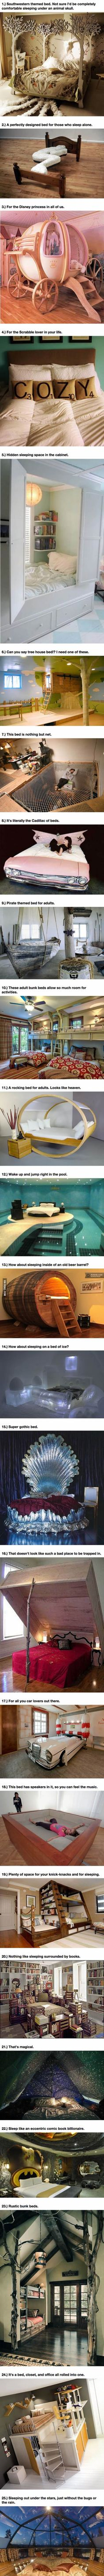 "Warning: These 25 Amazing Beds Will Make You Wish It Was Nap Time. - love the last ""bed under the stars"""